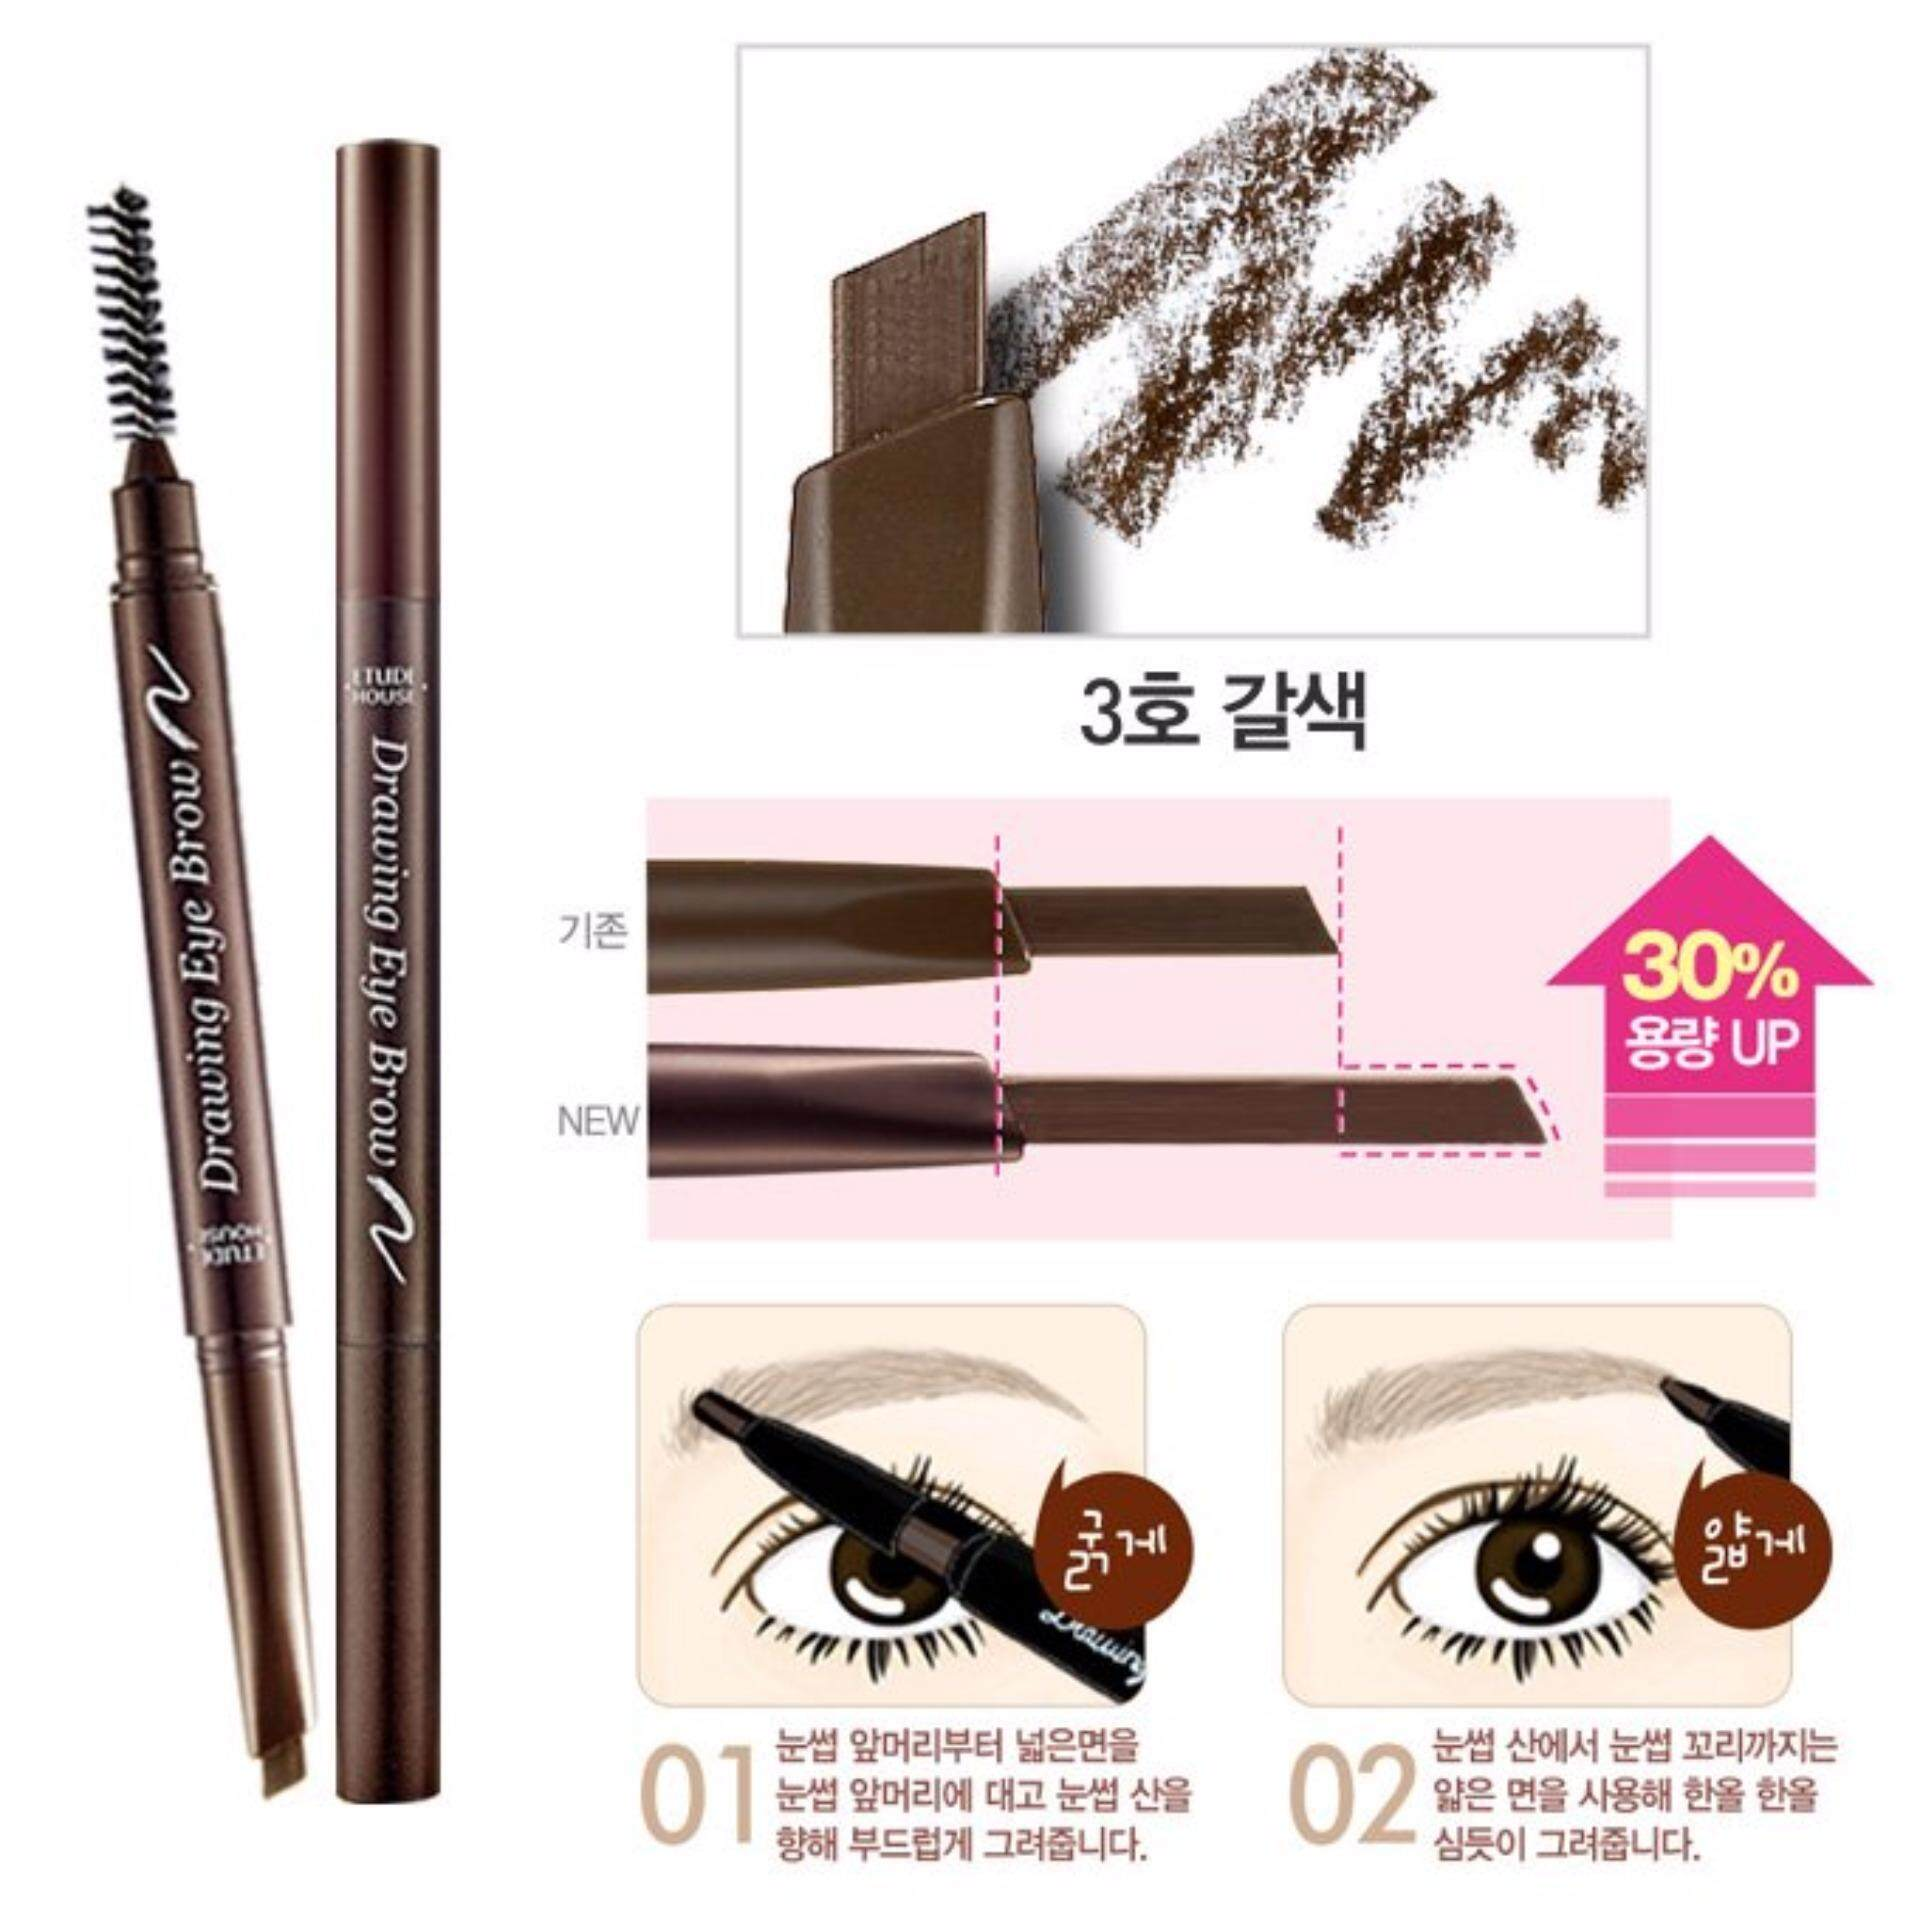 Etude House Drawing Eye Brow #3 สีน้ำตาล